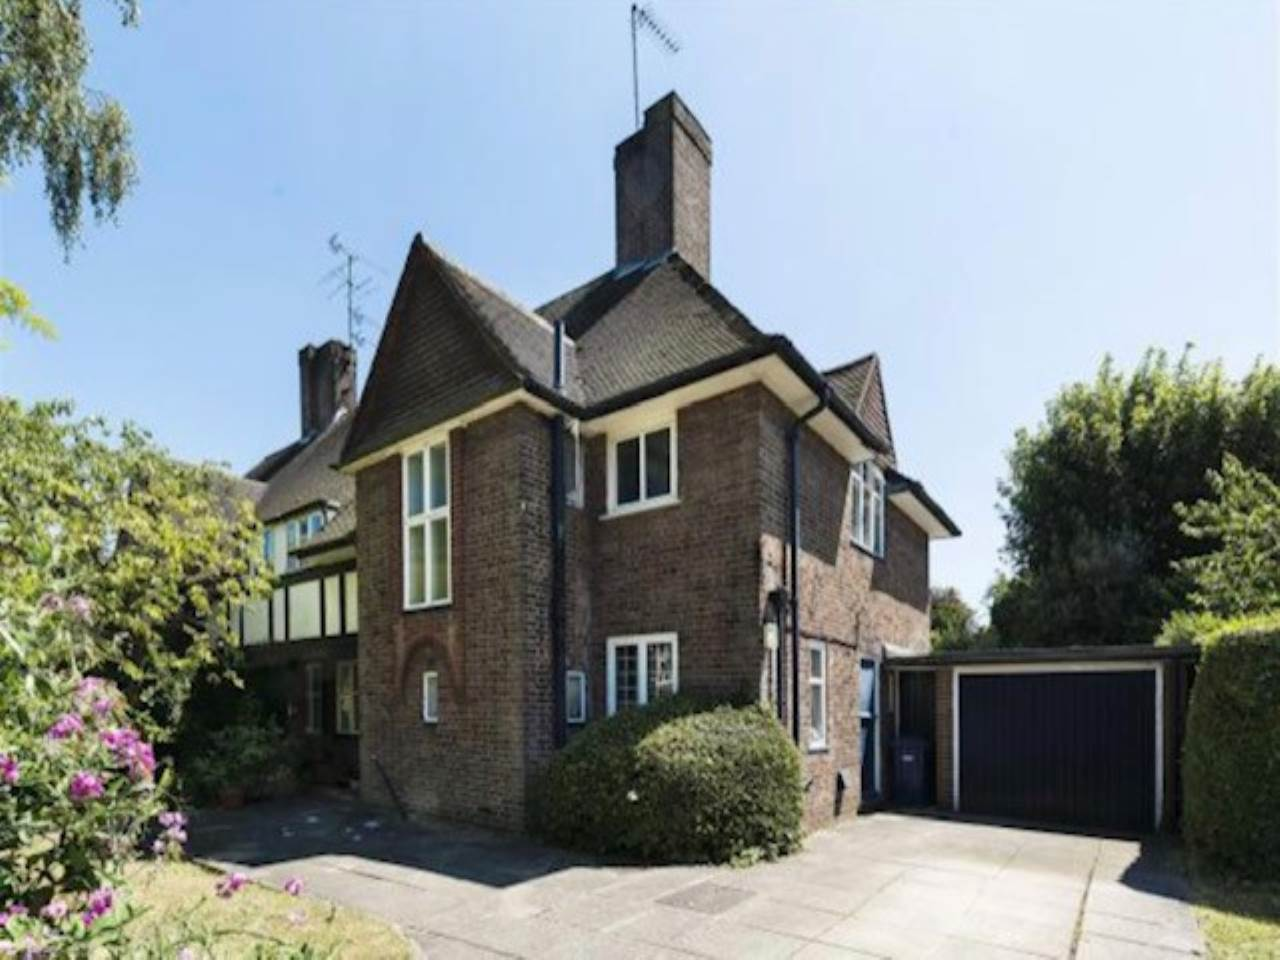 4 bed semi-detached-house to rent, NW11